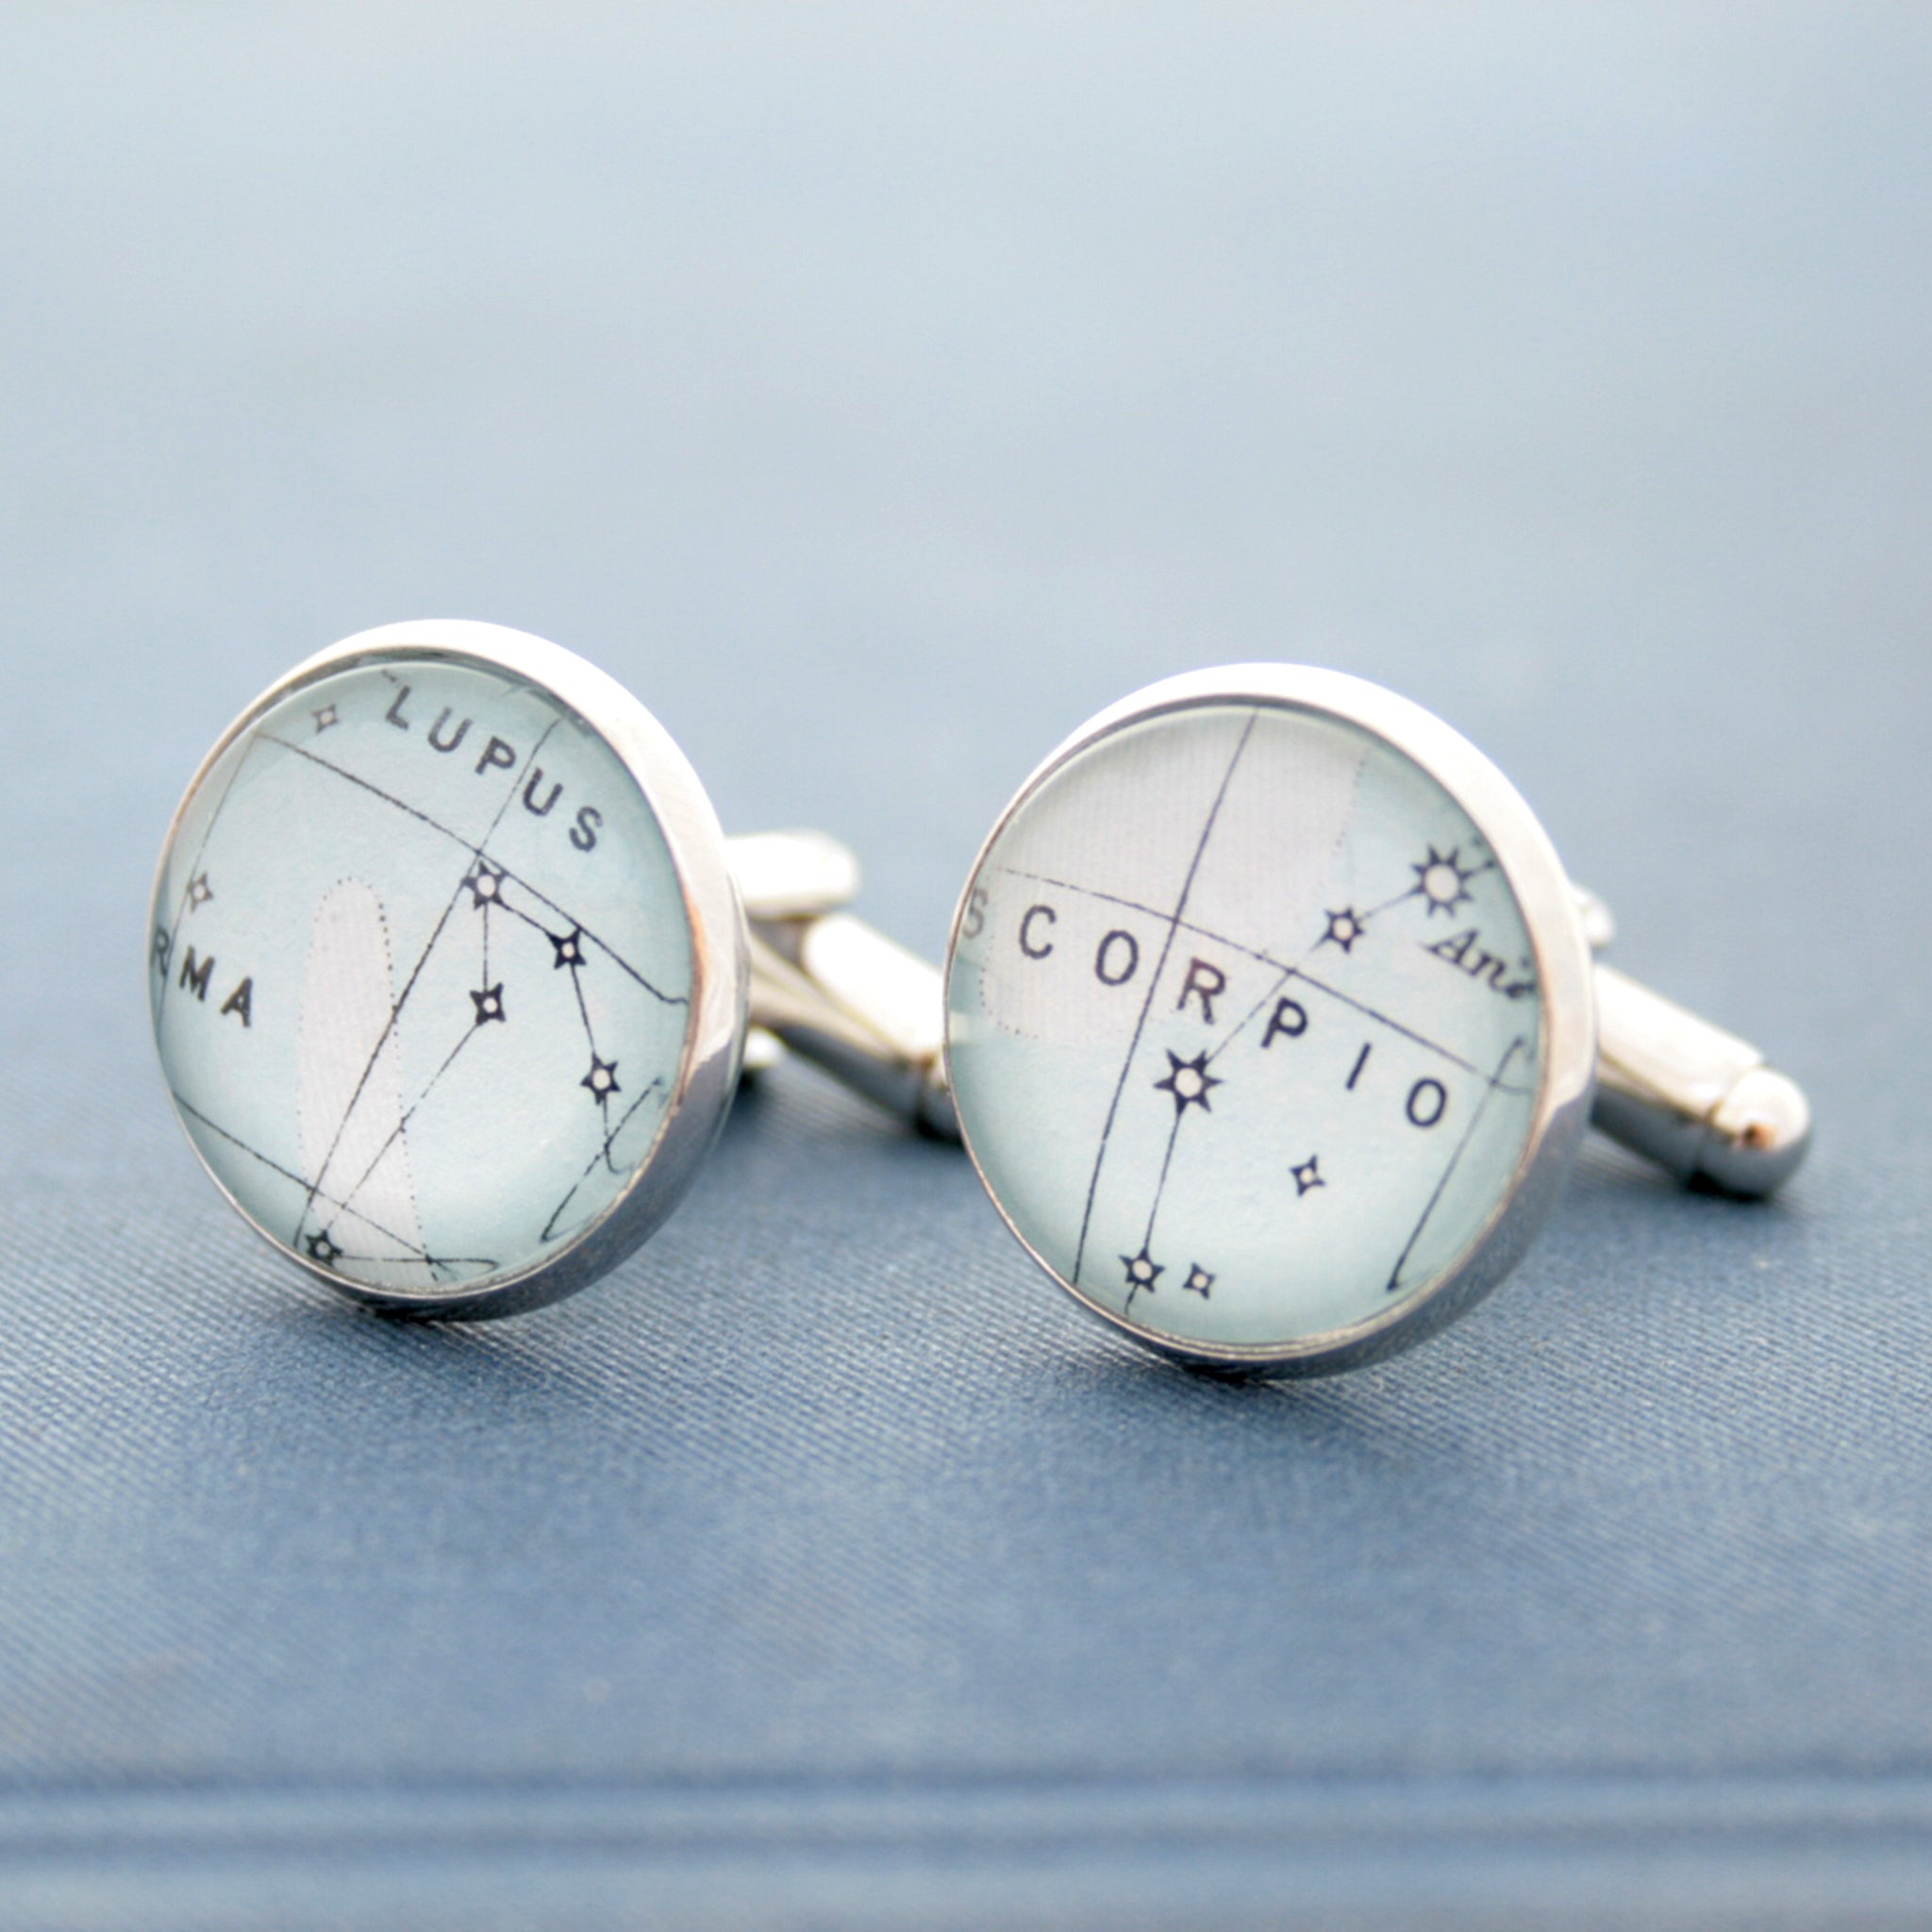 Blue cufflinks on silver blanks featuring star constellations